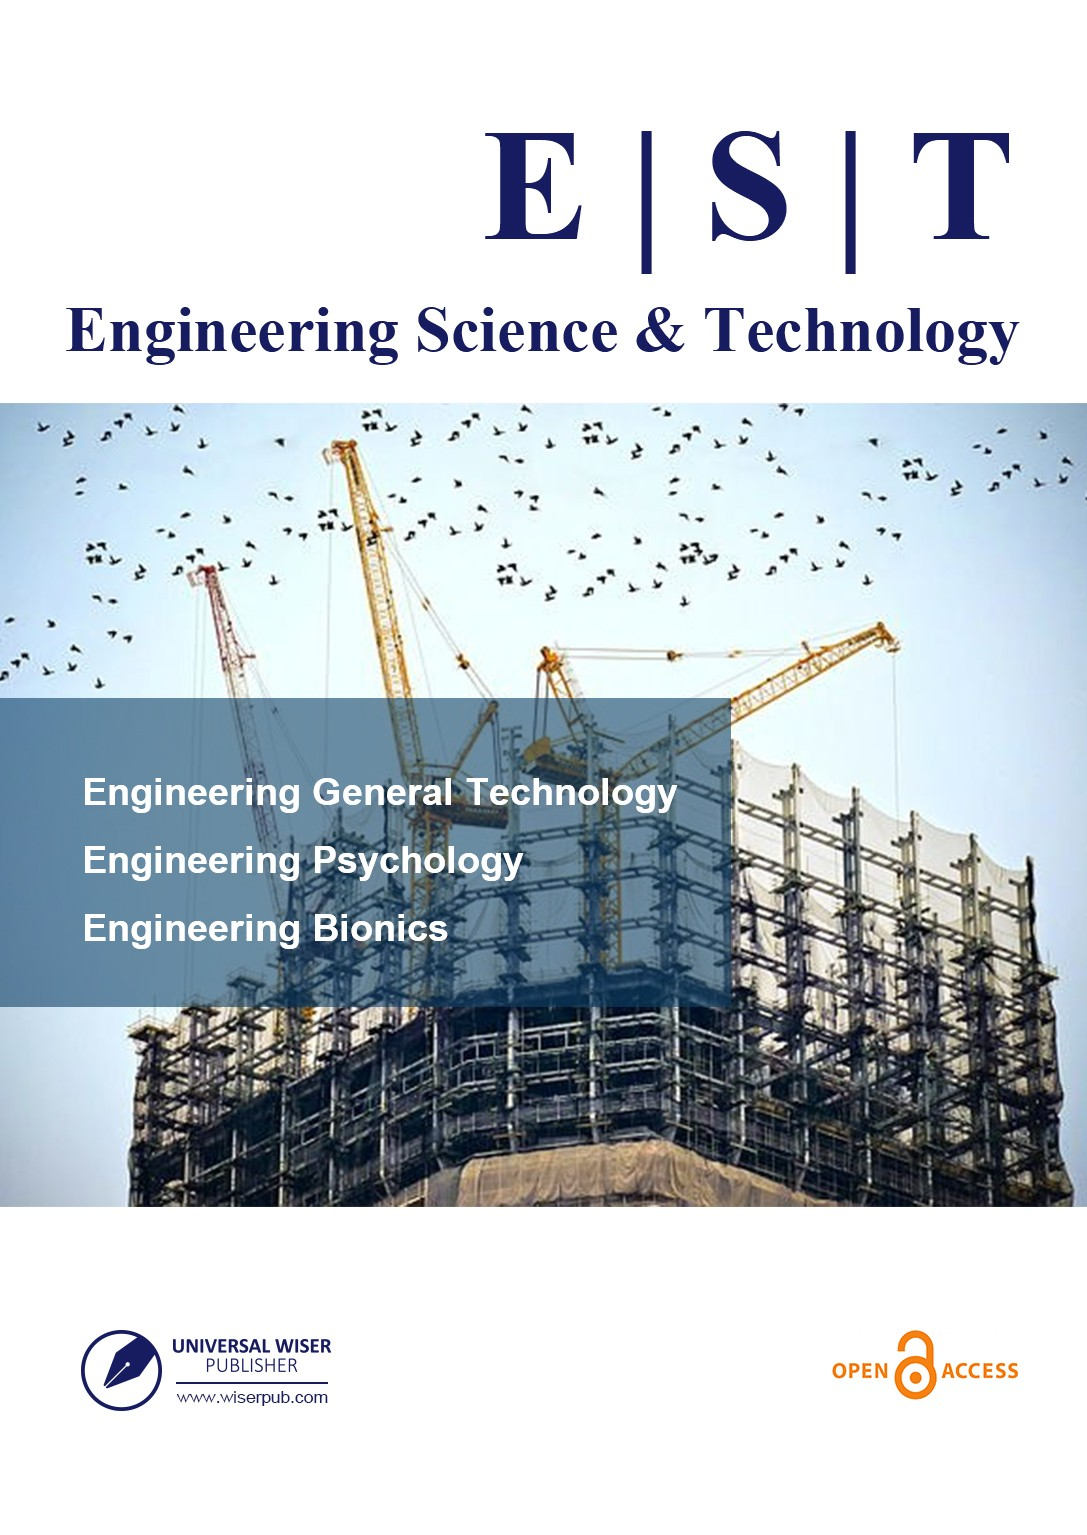 Engineering Science & Technology